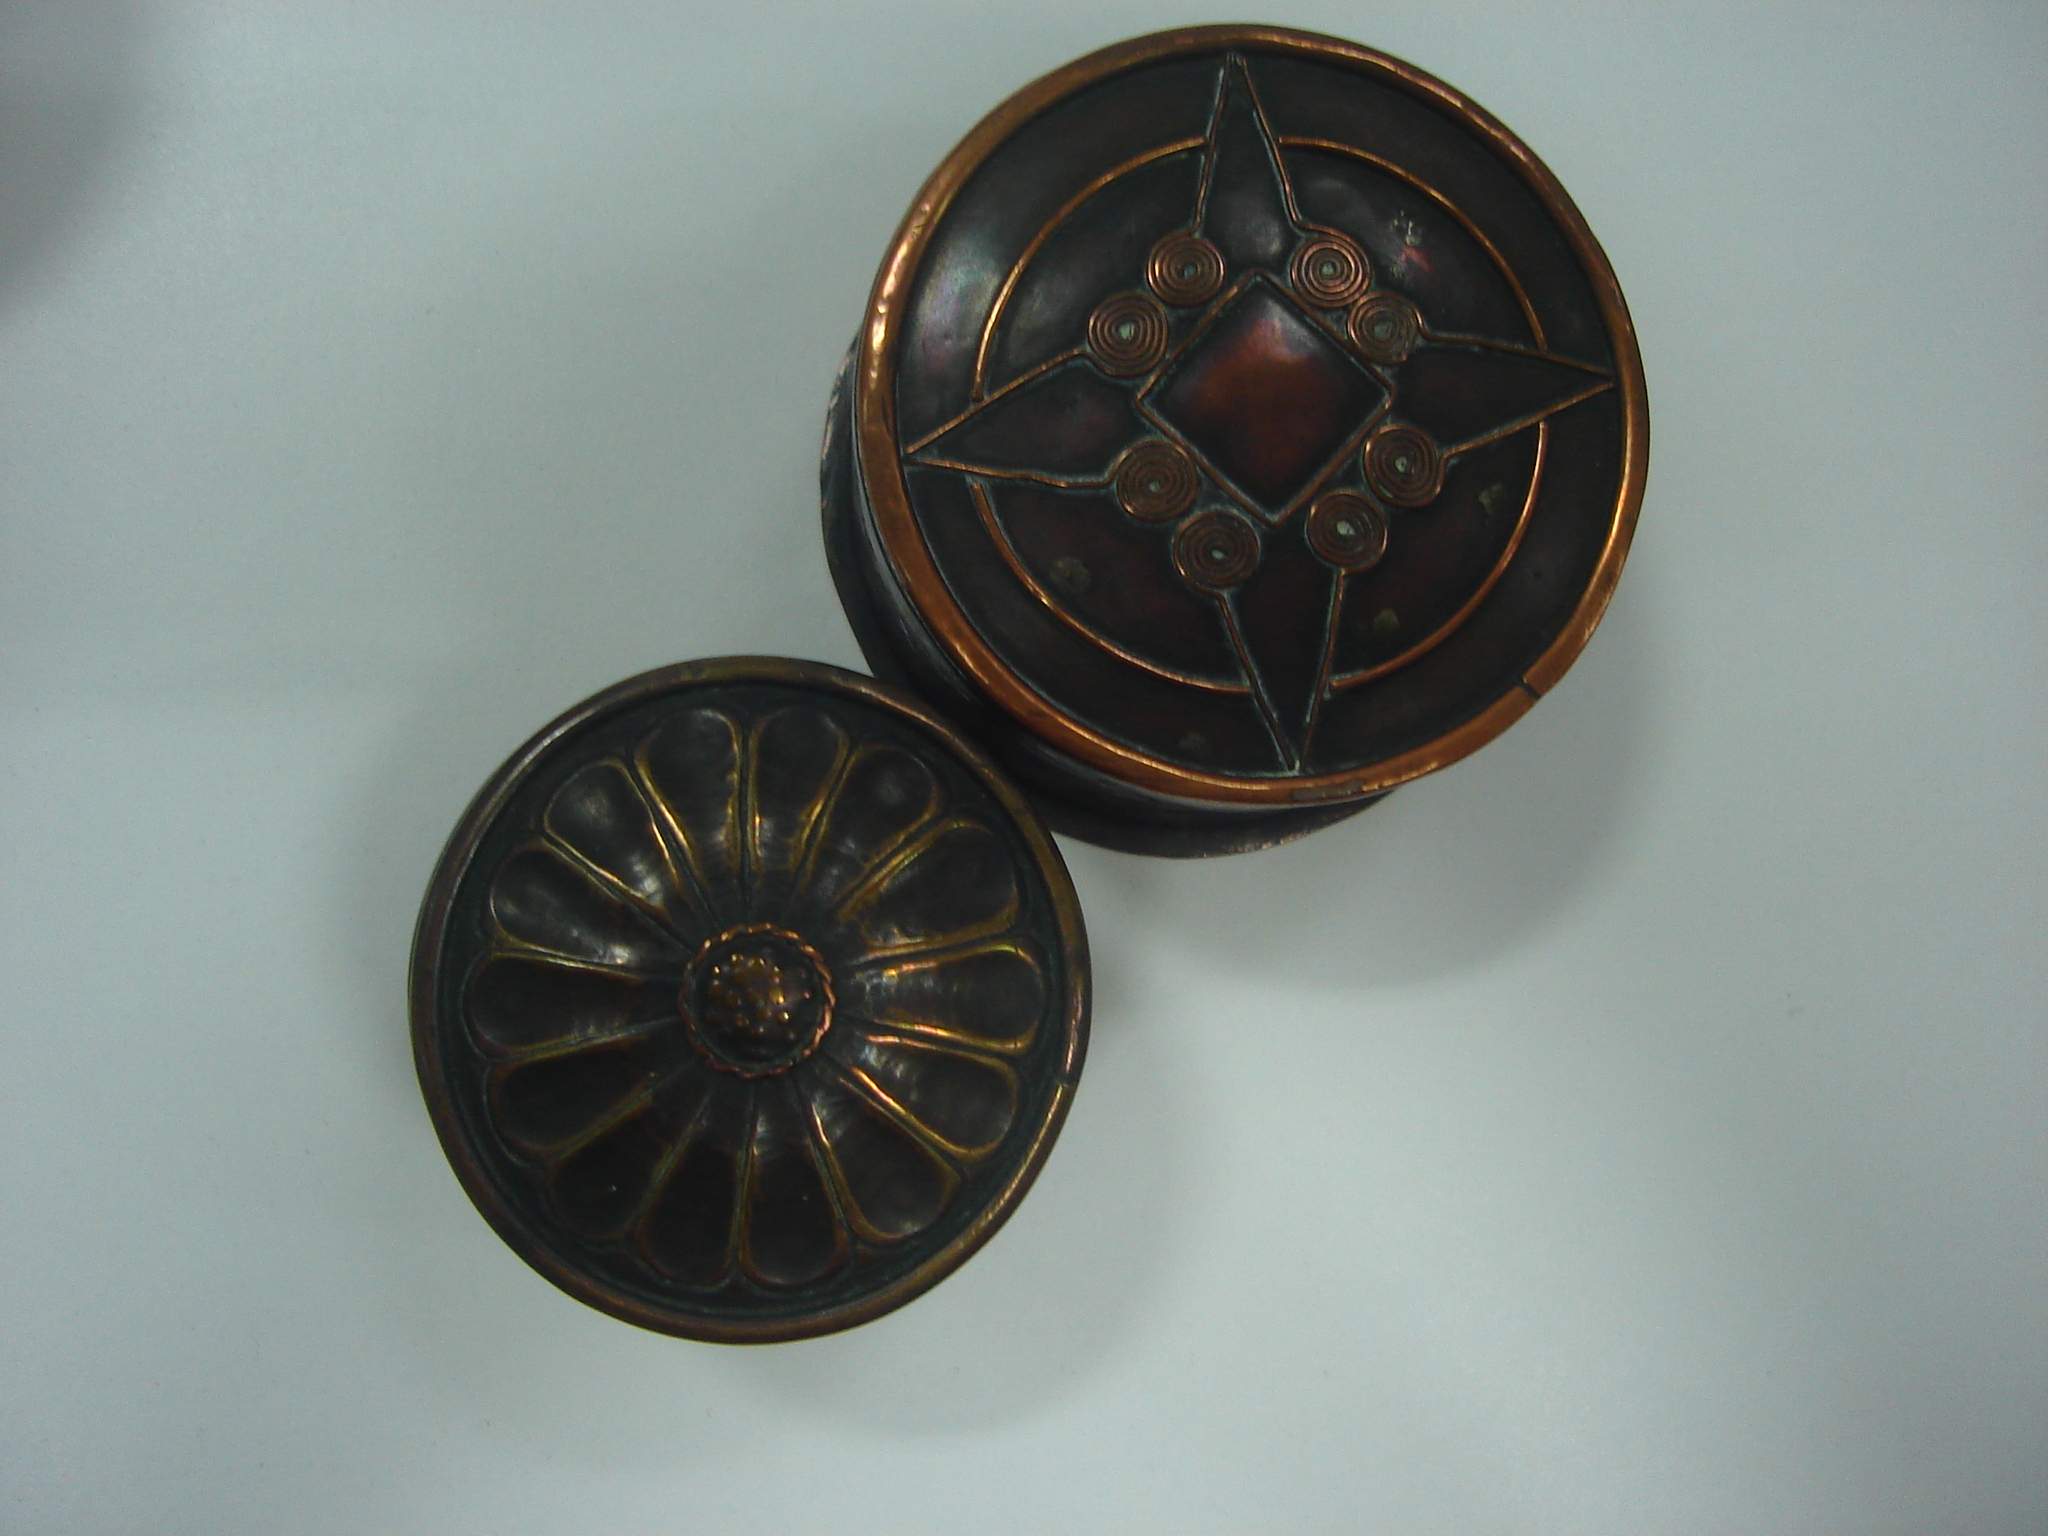 Copper boxes made by Birmingham School of Art students, c.1909-1913